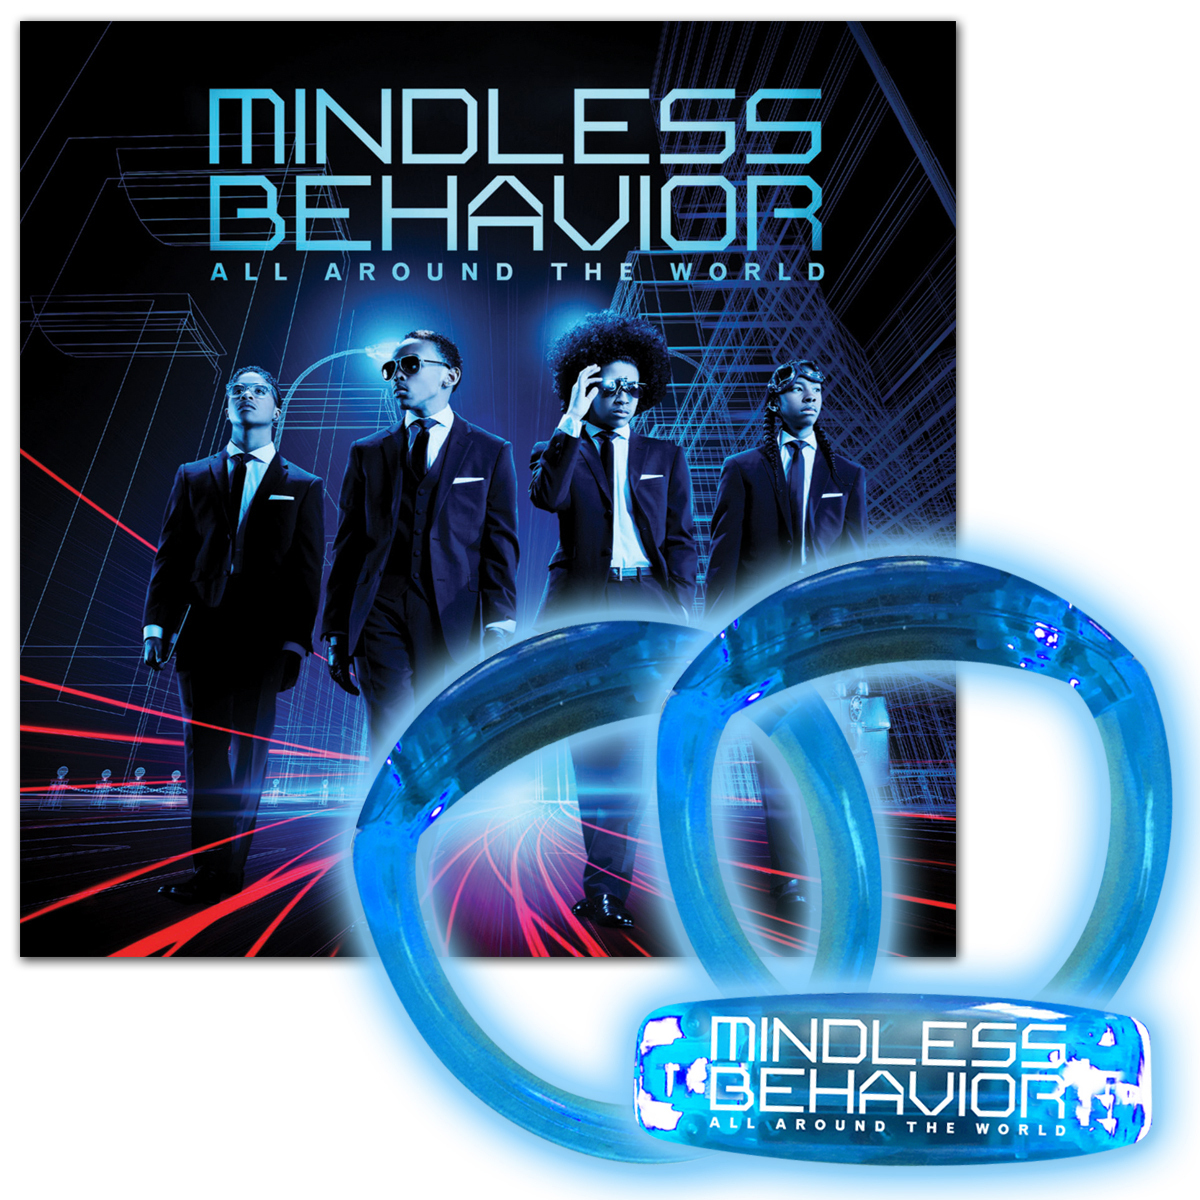 Mindless Behavior CD/Bracelet Bundle